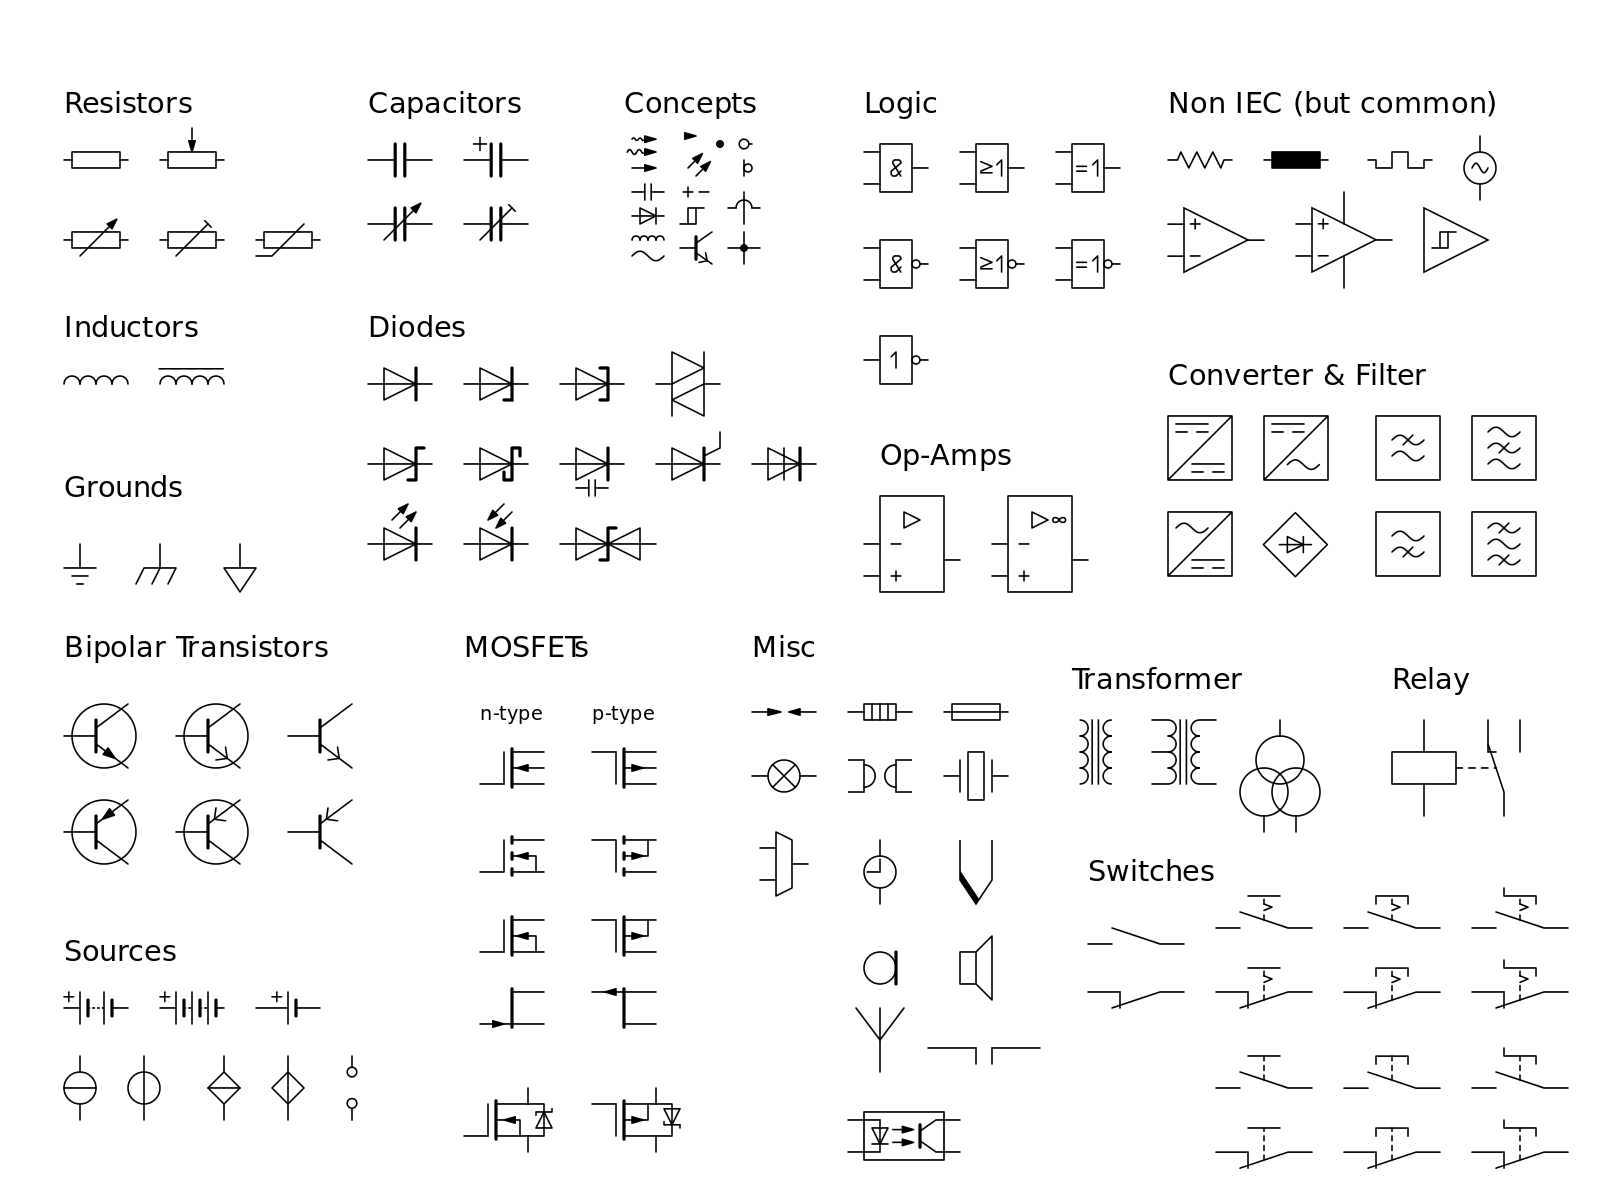 magnetic circuit breaker schneider electric and its graphic symbol